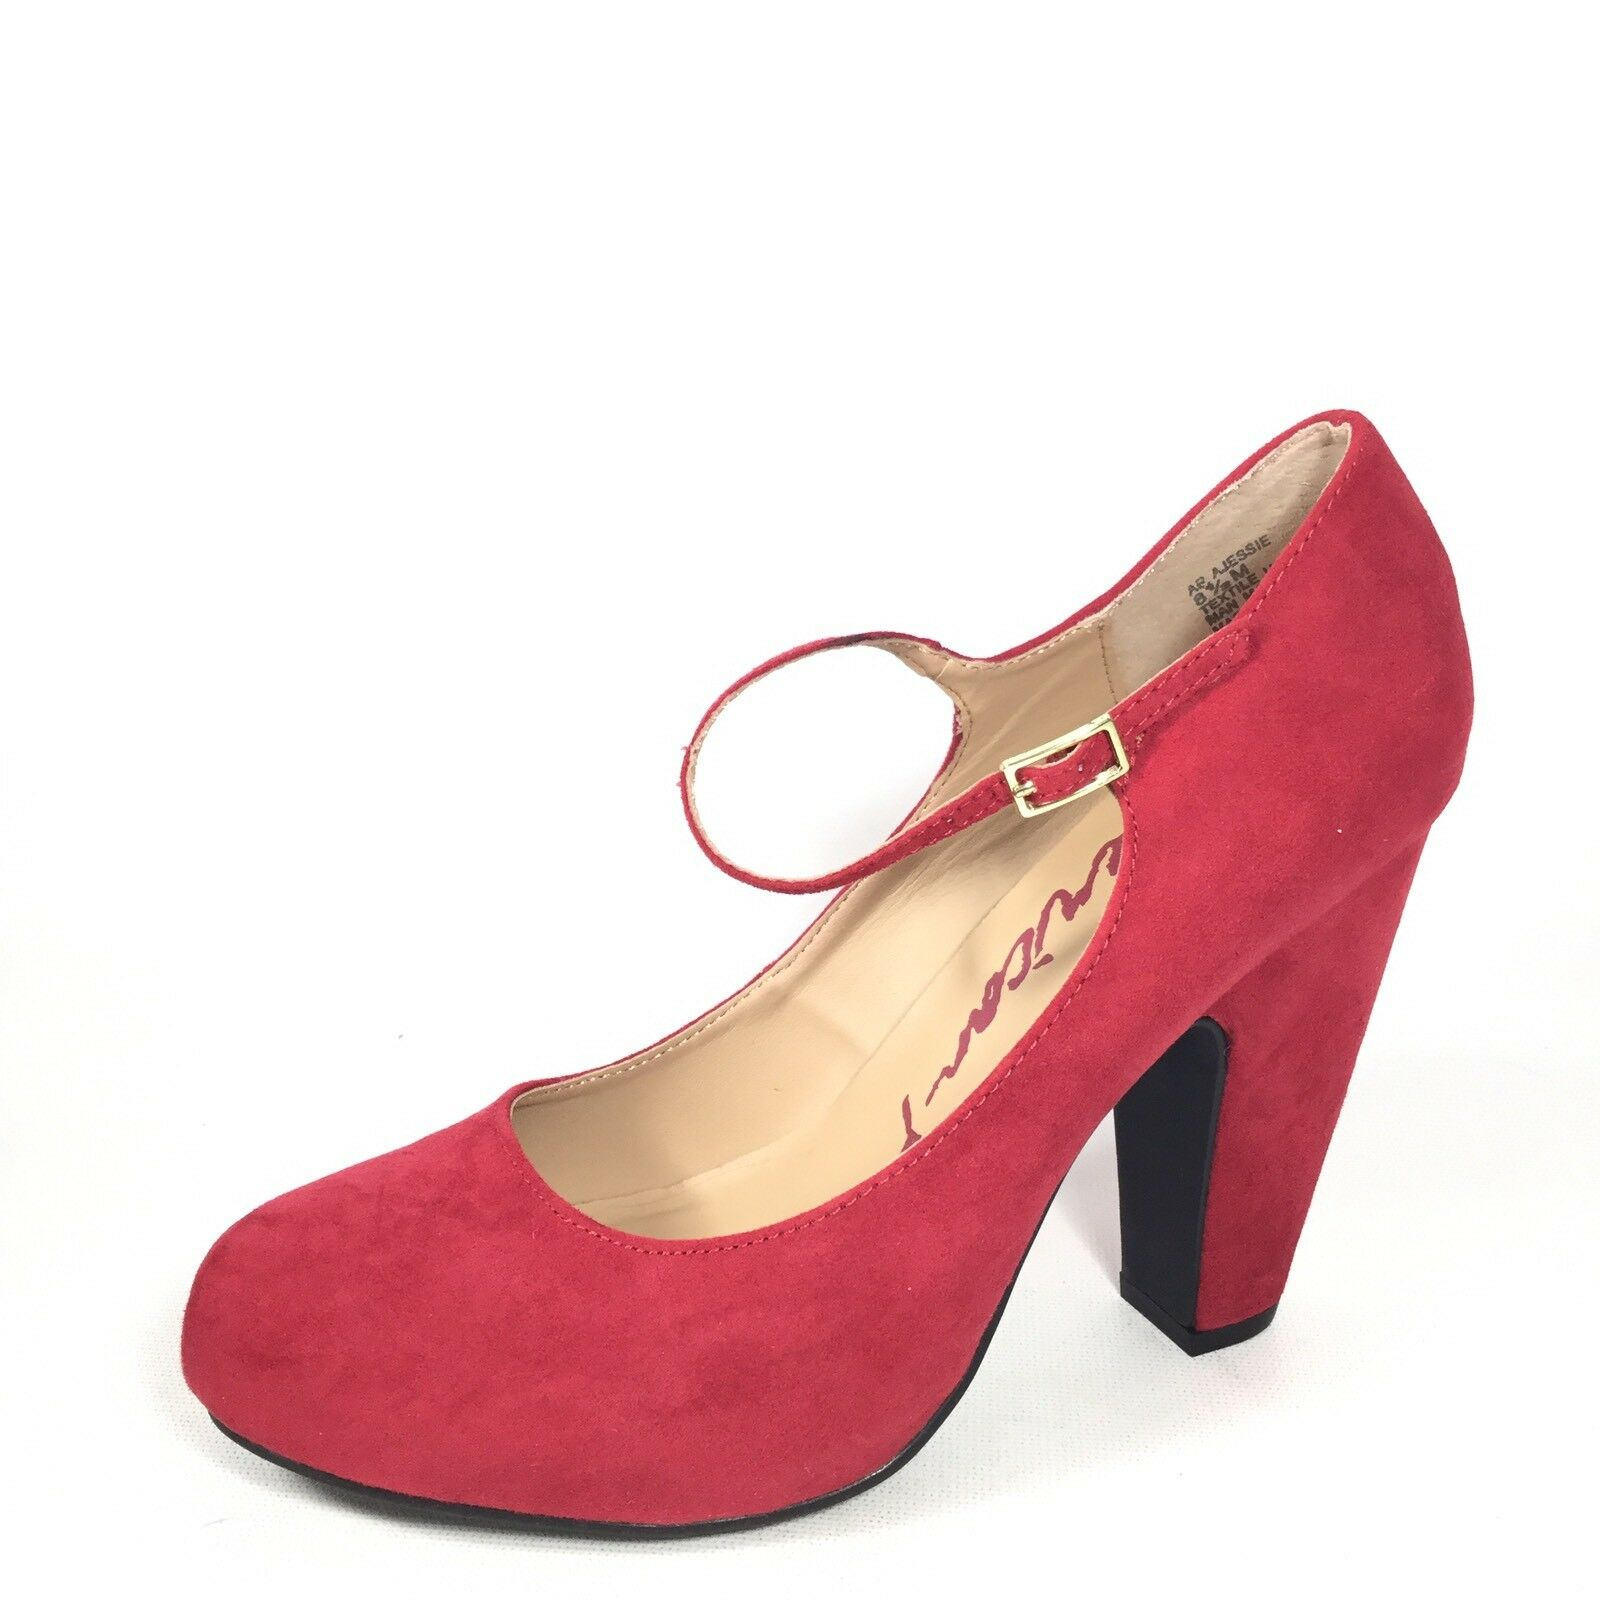 American Rag Jessie Womens Size 8.5 M Red Ankle Strap Mary Jane Heel shoes